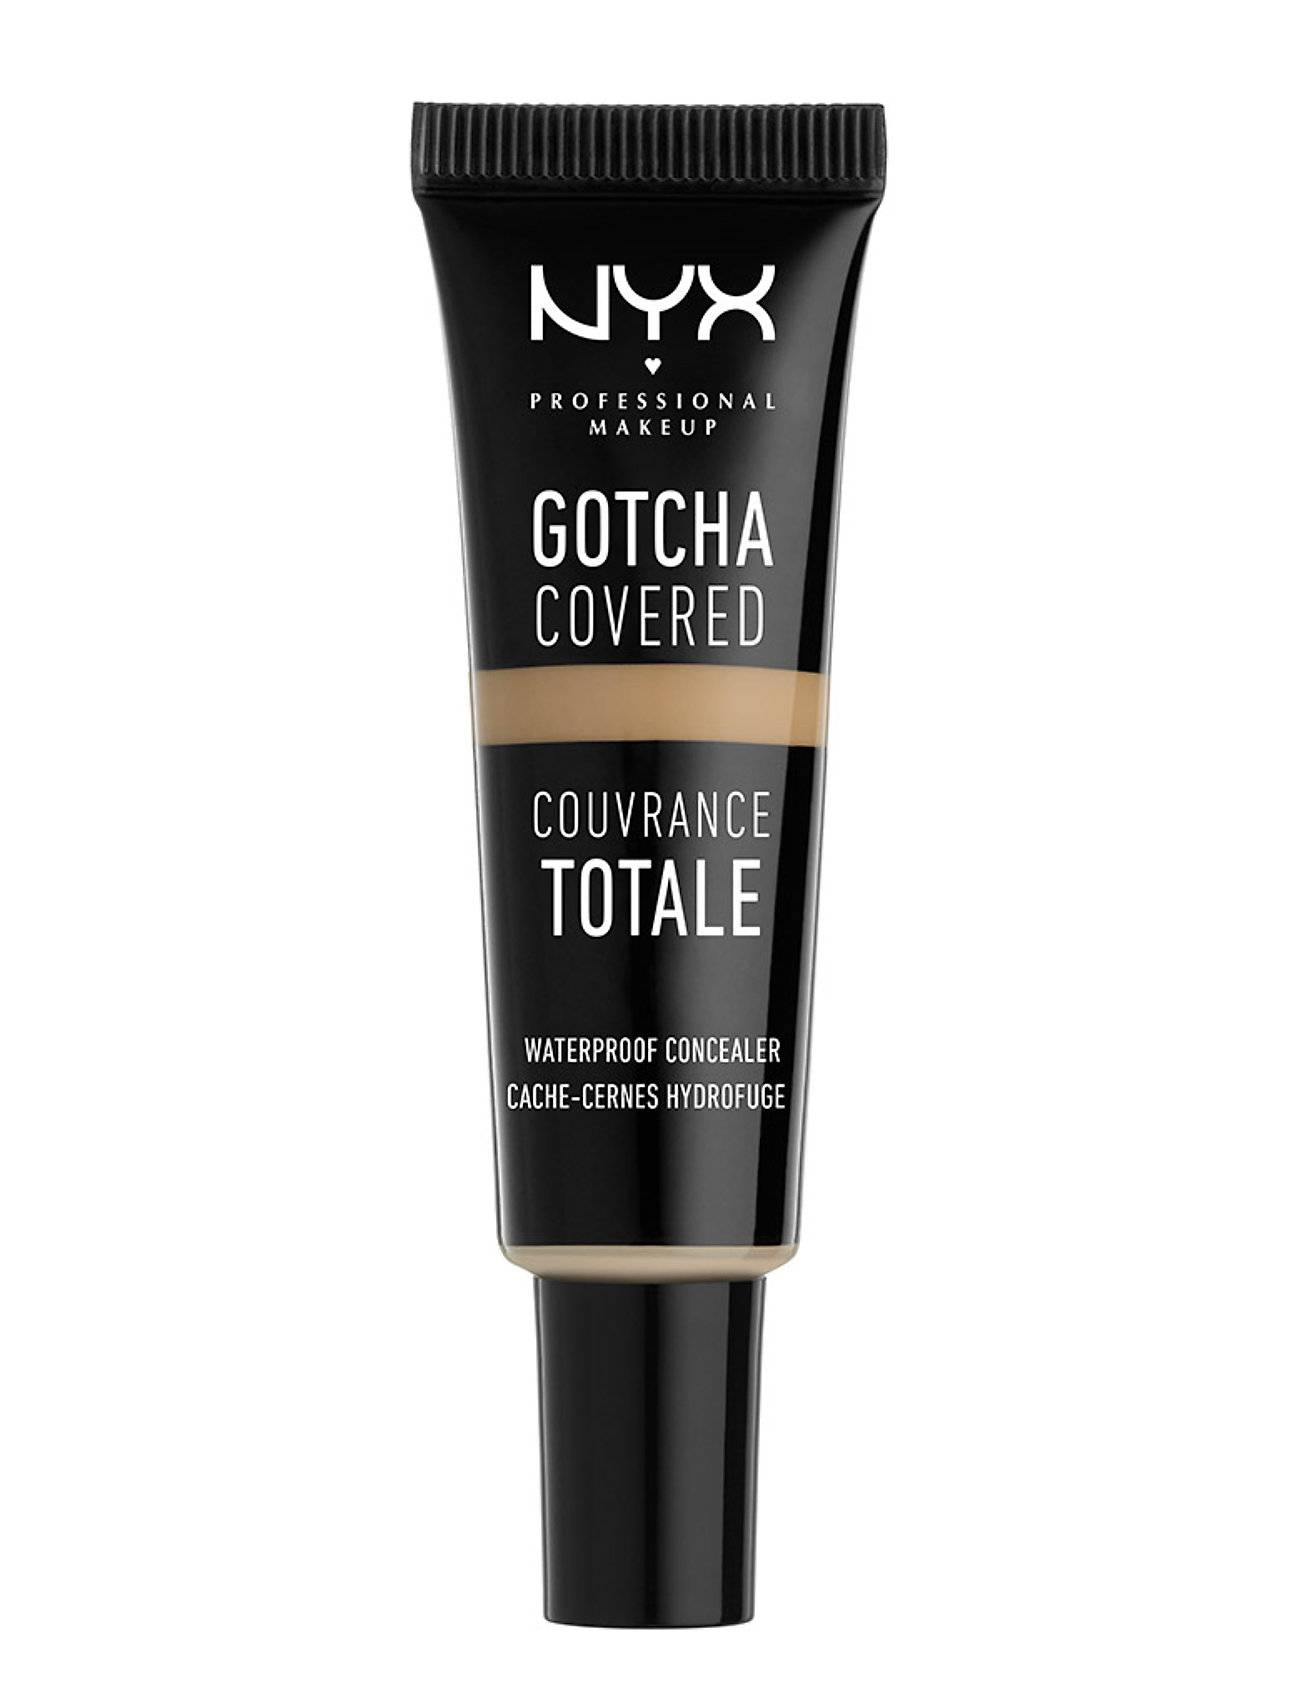 NYX PROFESSIONAL MAKEUP Gotcha Covered Concealer